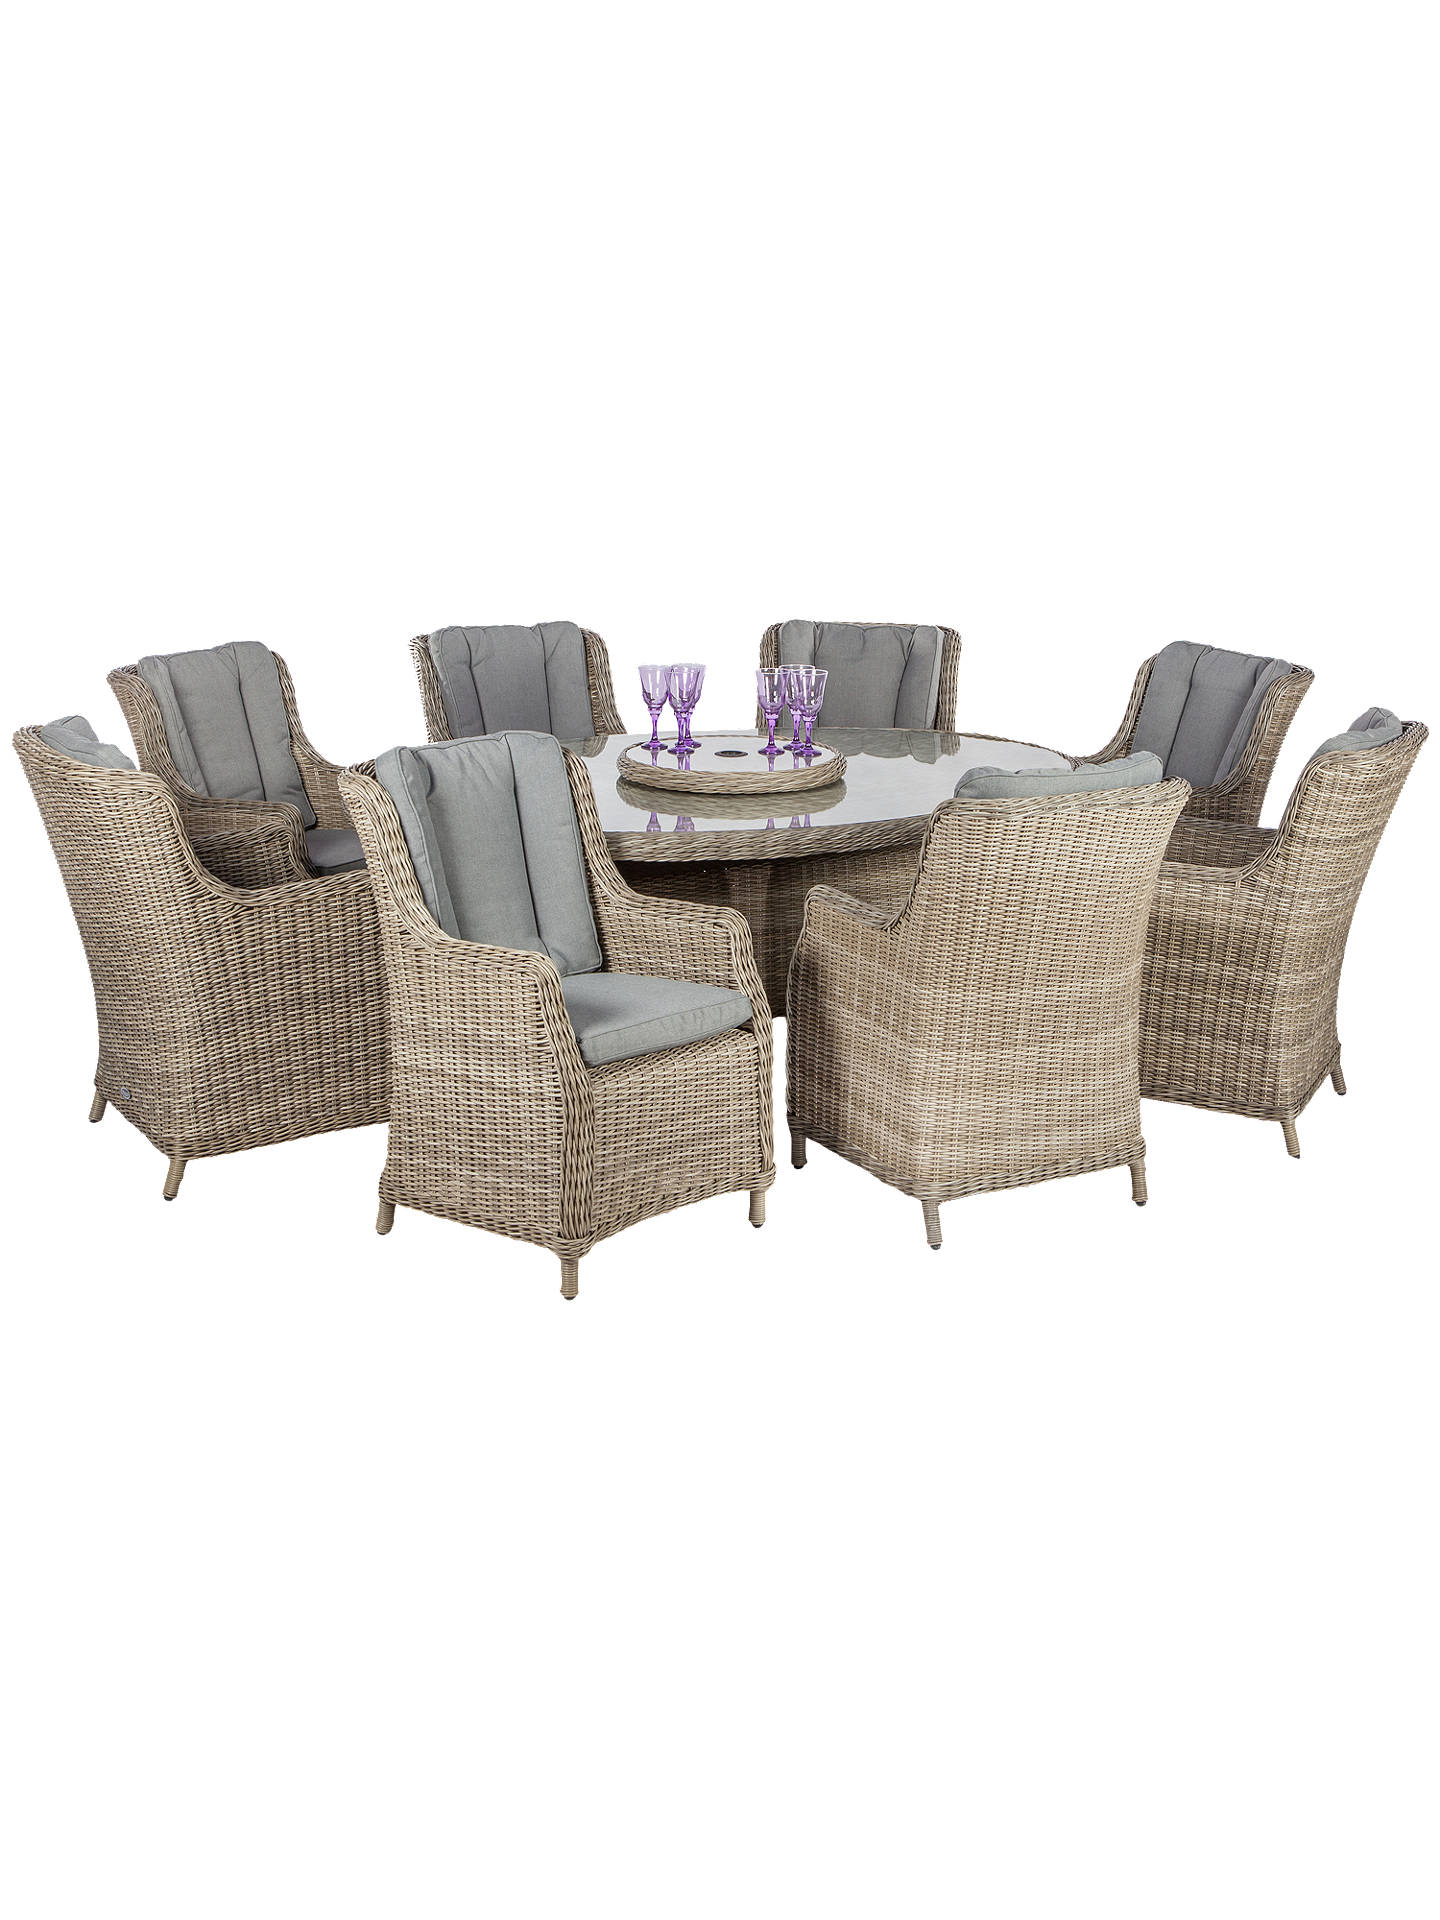 BuyRoyalcraft Wentworth Imperial 8-Seater Garden Dining Table and High Back Chairs Set Online at johnlewis.com